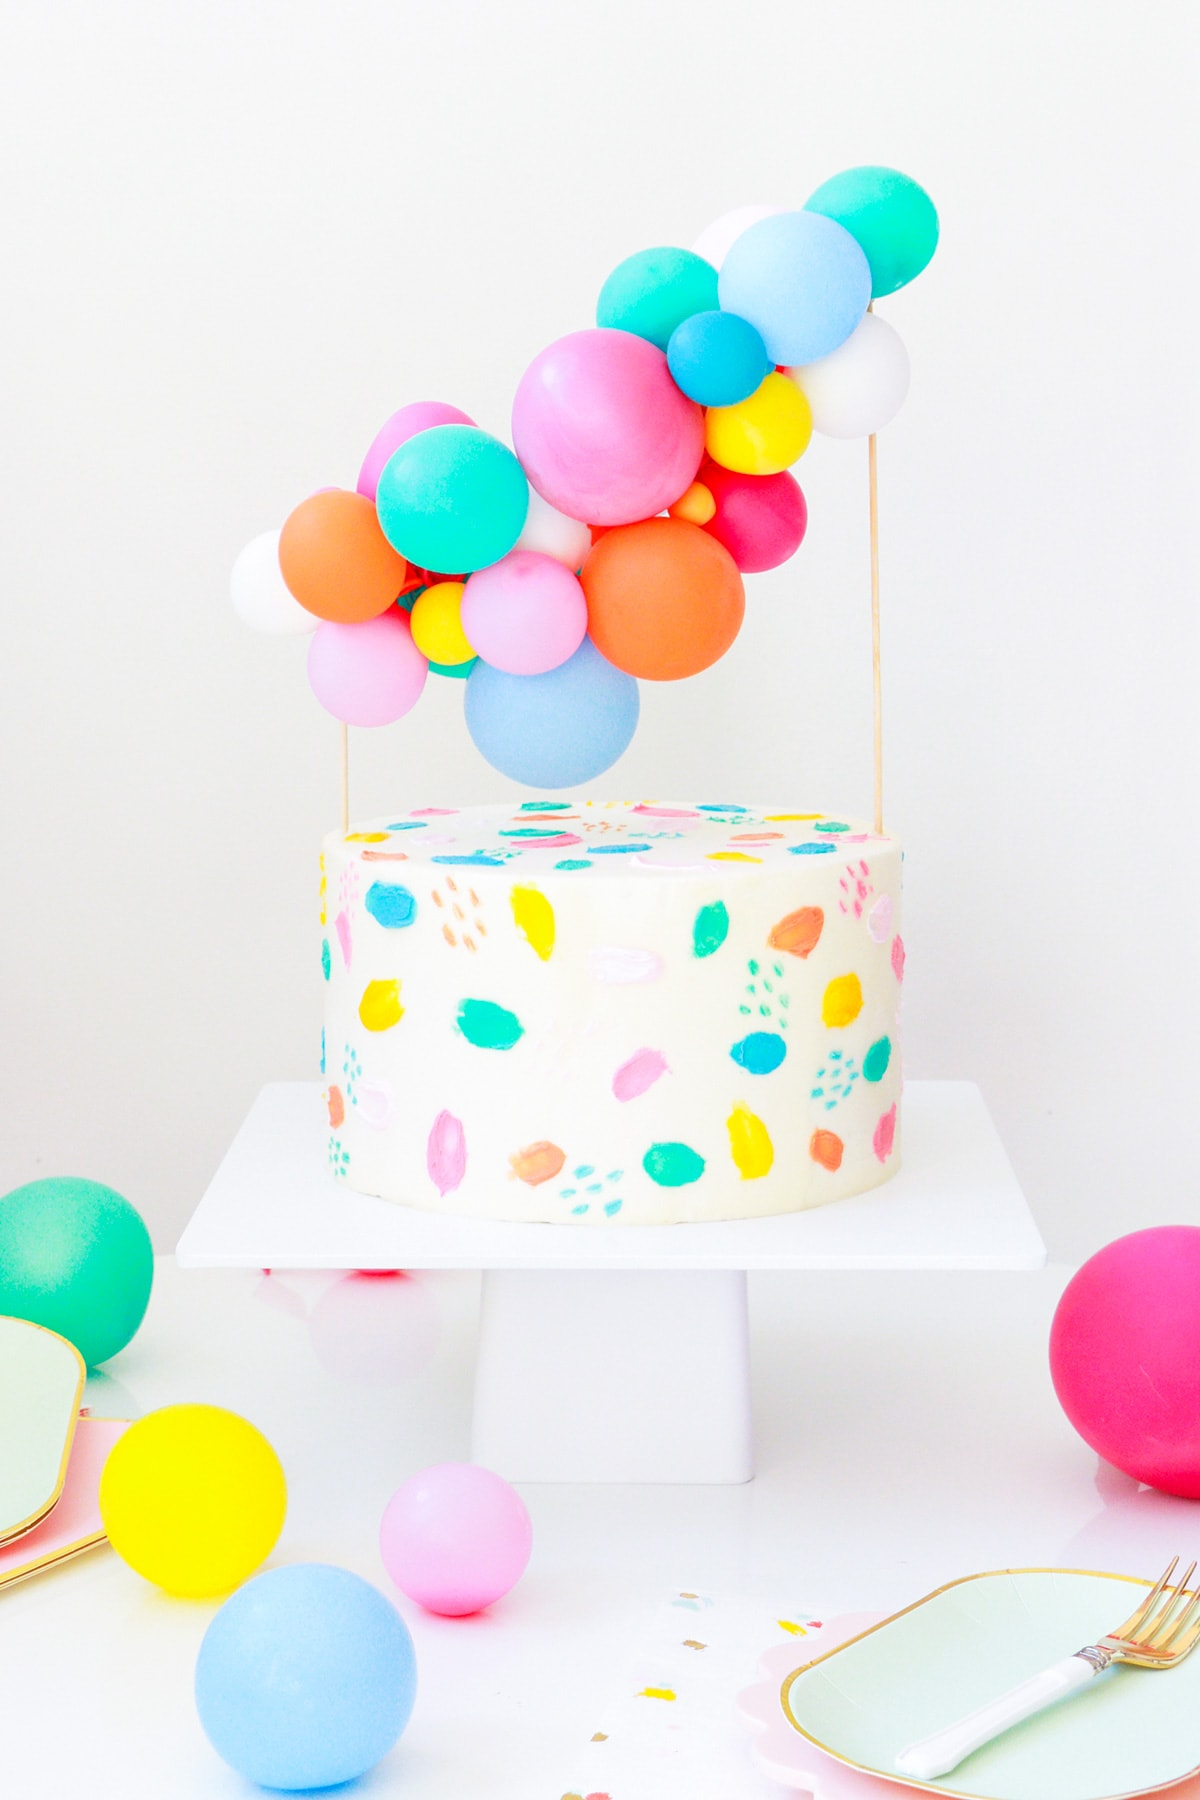 DIY Balloon Cake Topper by top Houston lifestyle Blogger Ashley Rose of Sugar & Cloth - DIY DECOR #DIY #decor #balloon #balloongarland #party #celebrate #birthday #garland #diydecor